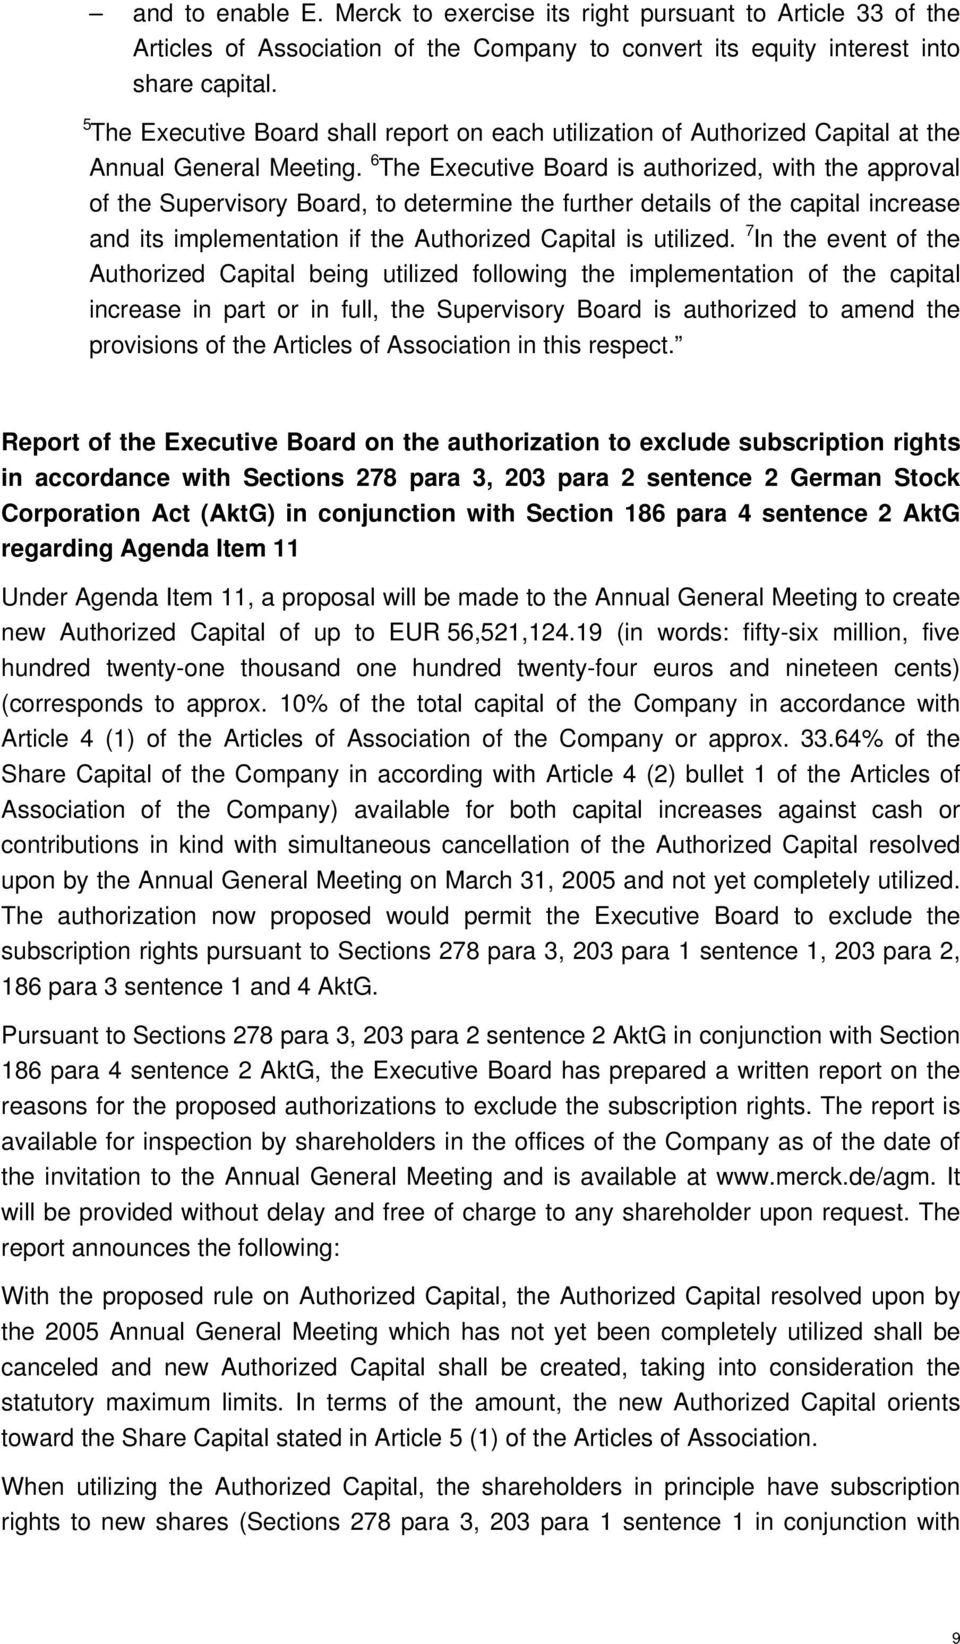 6 The Executive Board is authorized, with the approval of the Supervisory Board, to determine the further details of the capital increase and its implementation if the Authorized Capital is utilized.